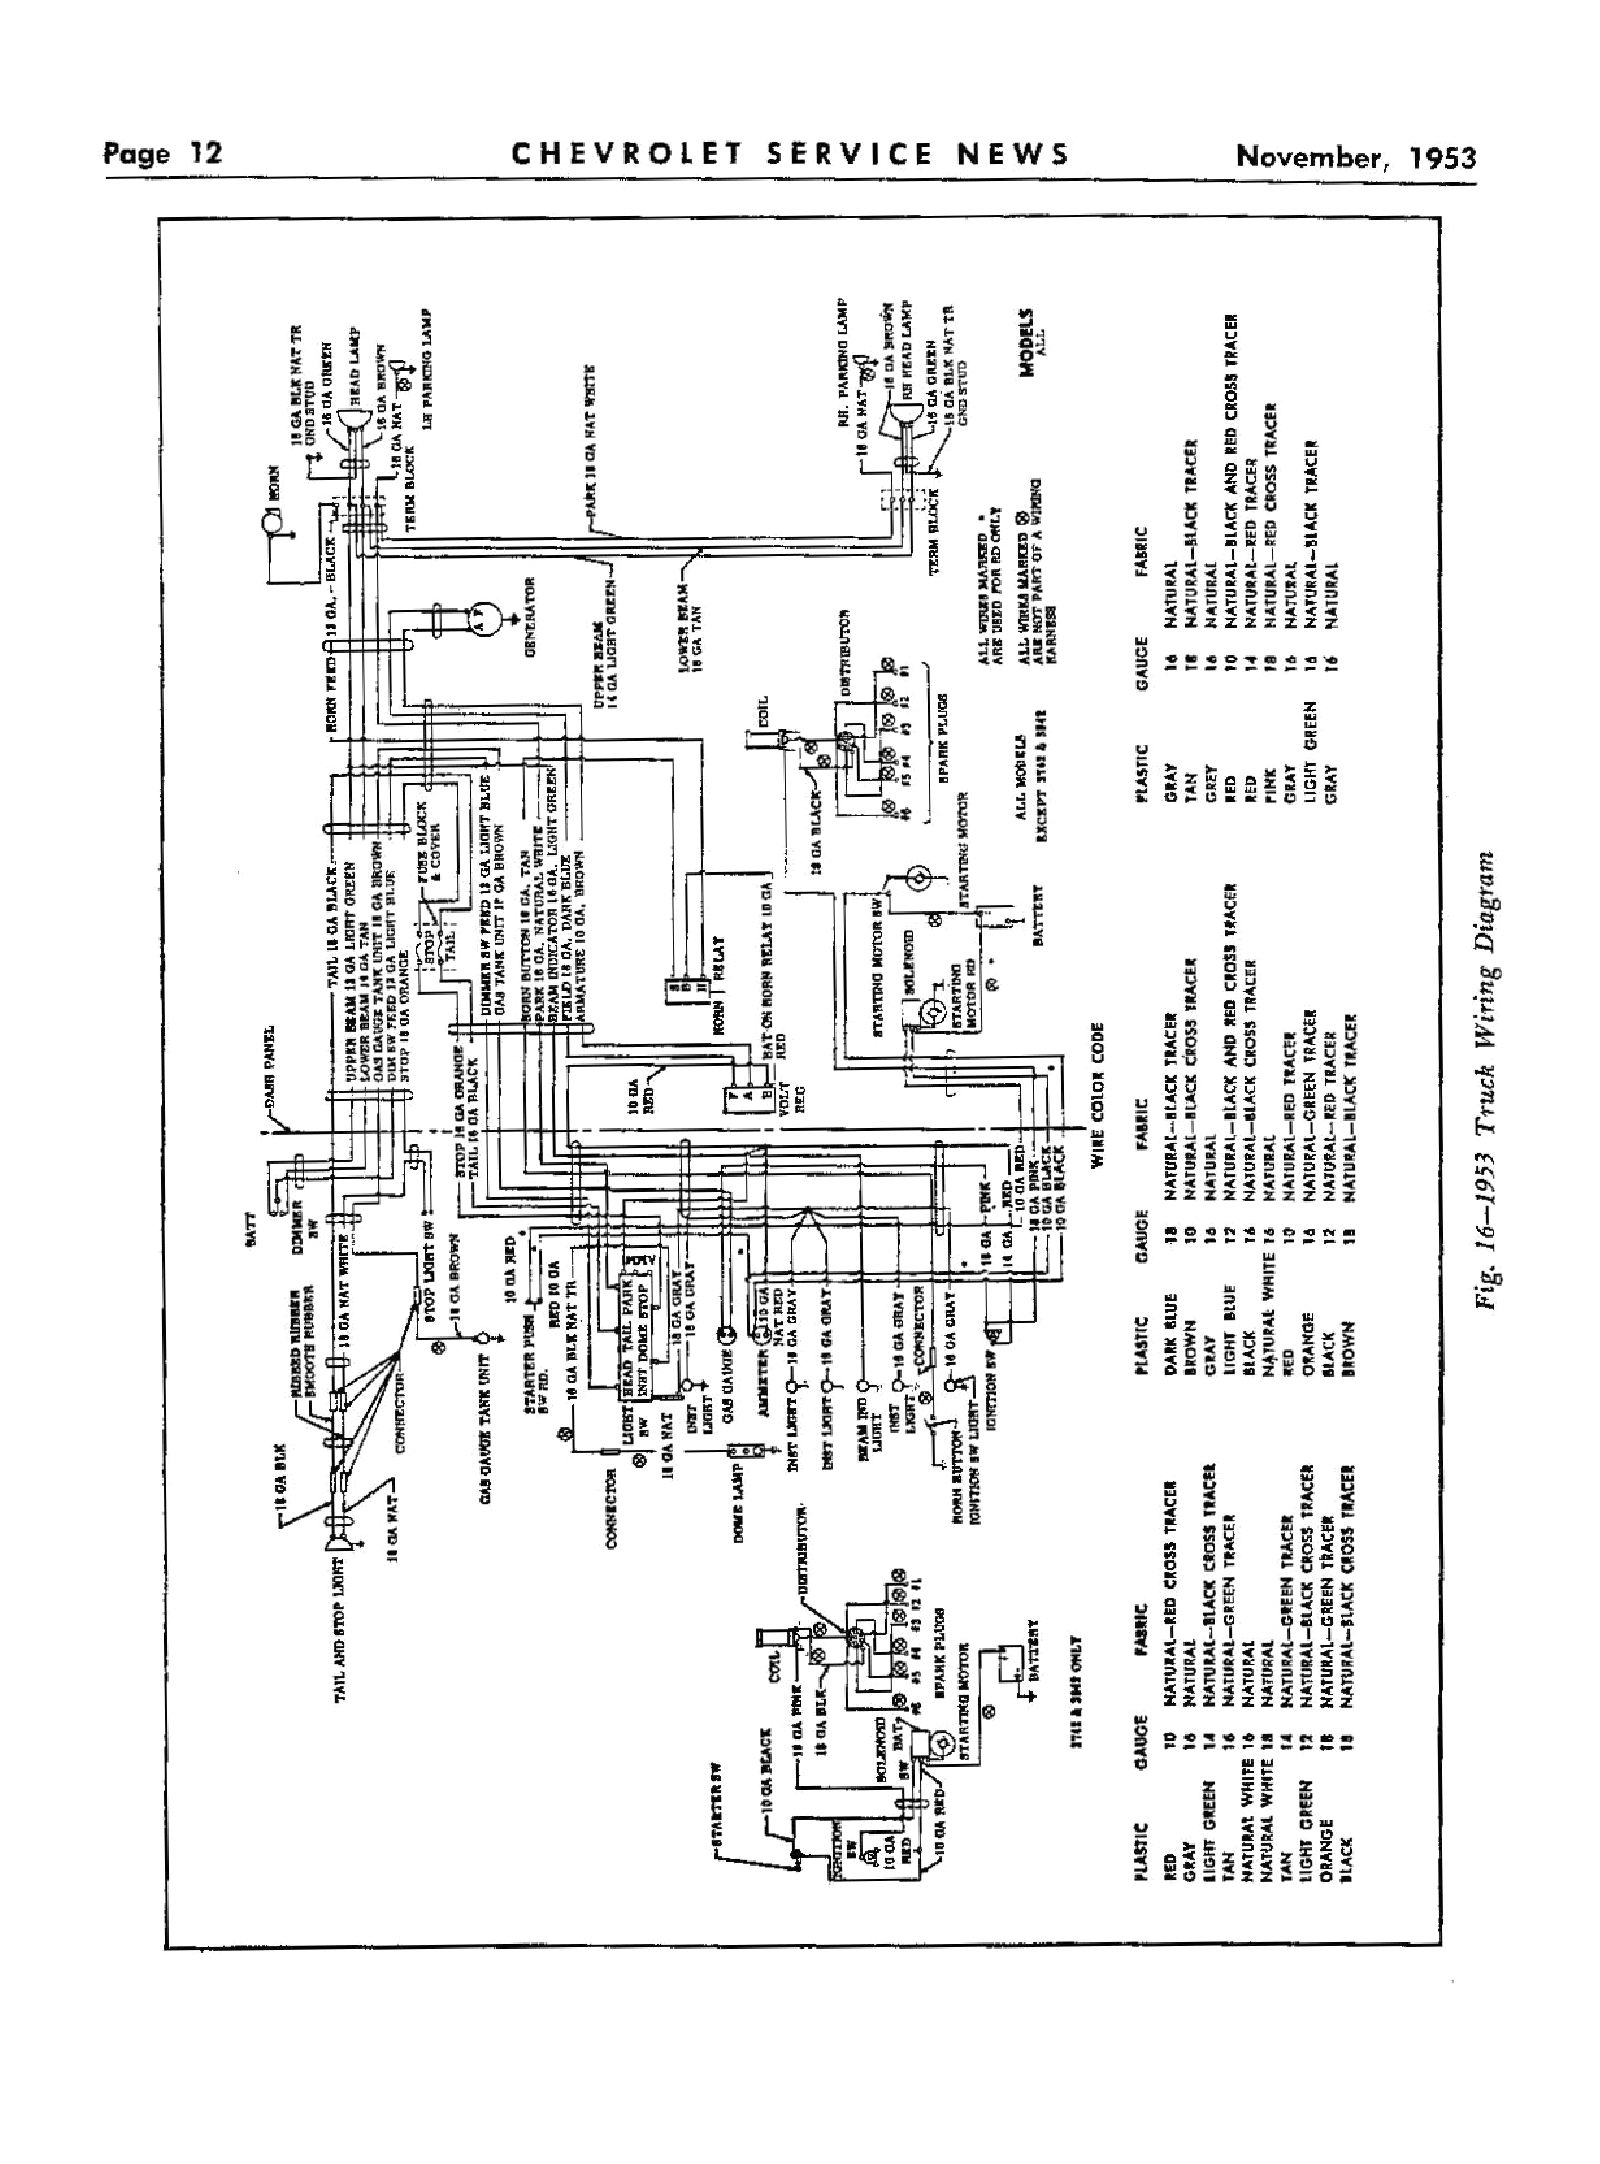 1951 Ford Car Generator Wiring Diagram Library R1200rt 1953 Truck Chevy Diagrams